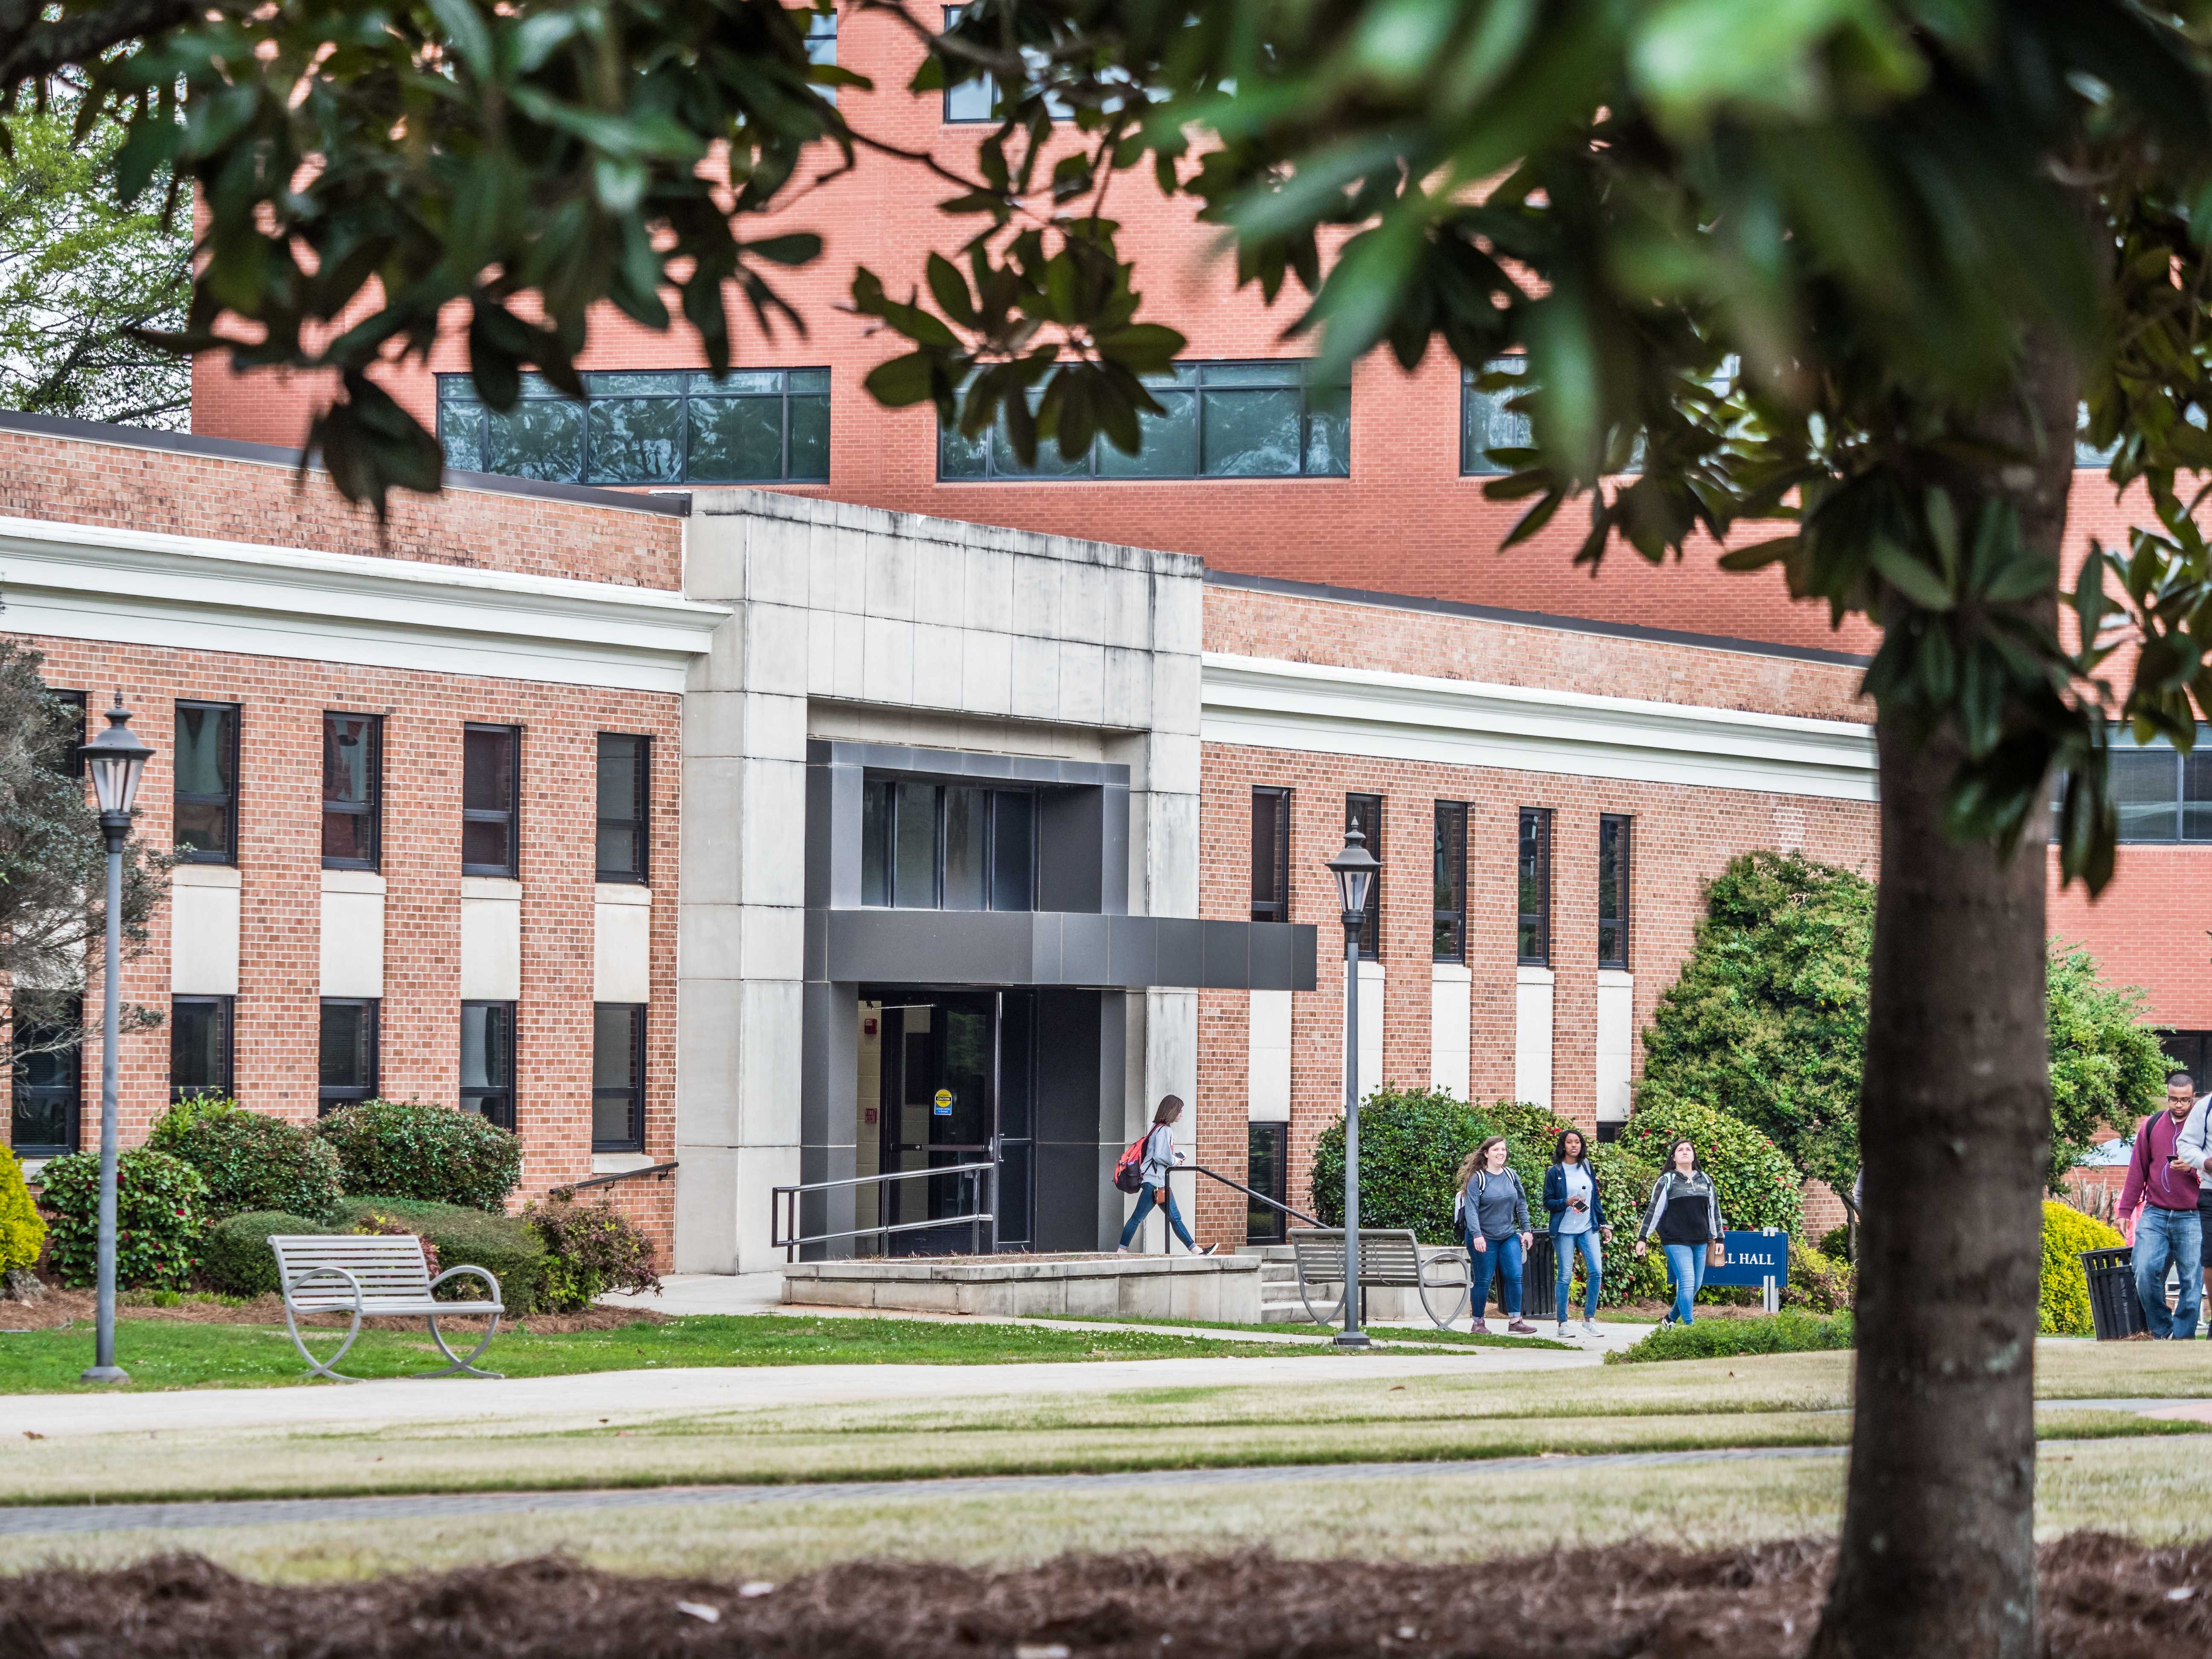 While summer term is being delivered online, Gordon State College's classes are scheduled for in-person for fall term, which starts Aug. 12.